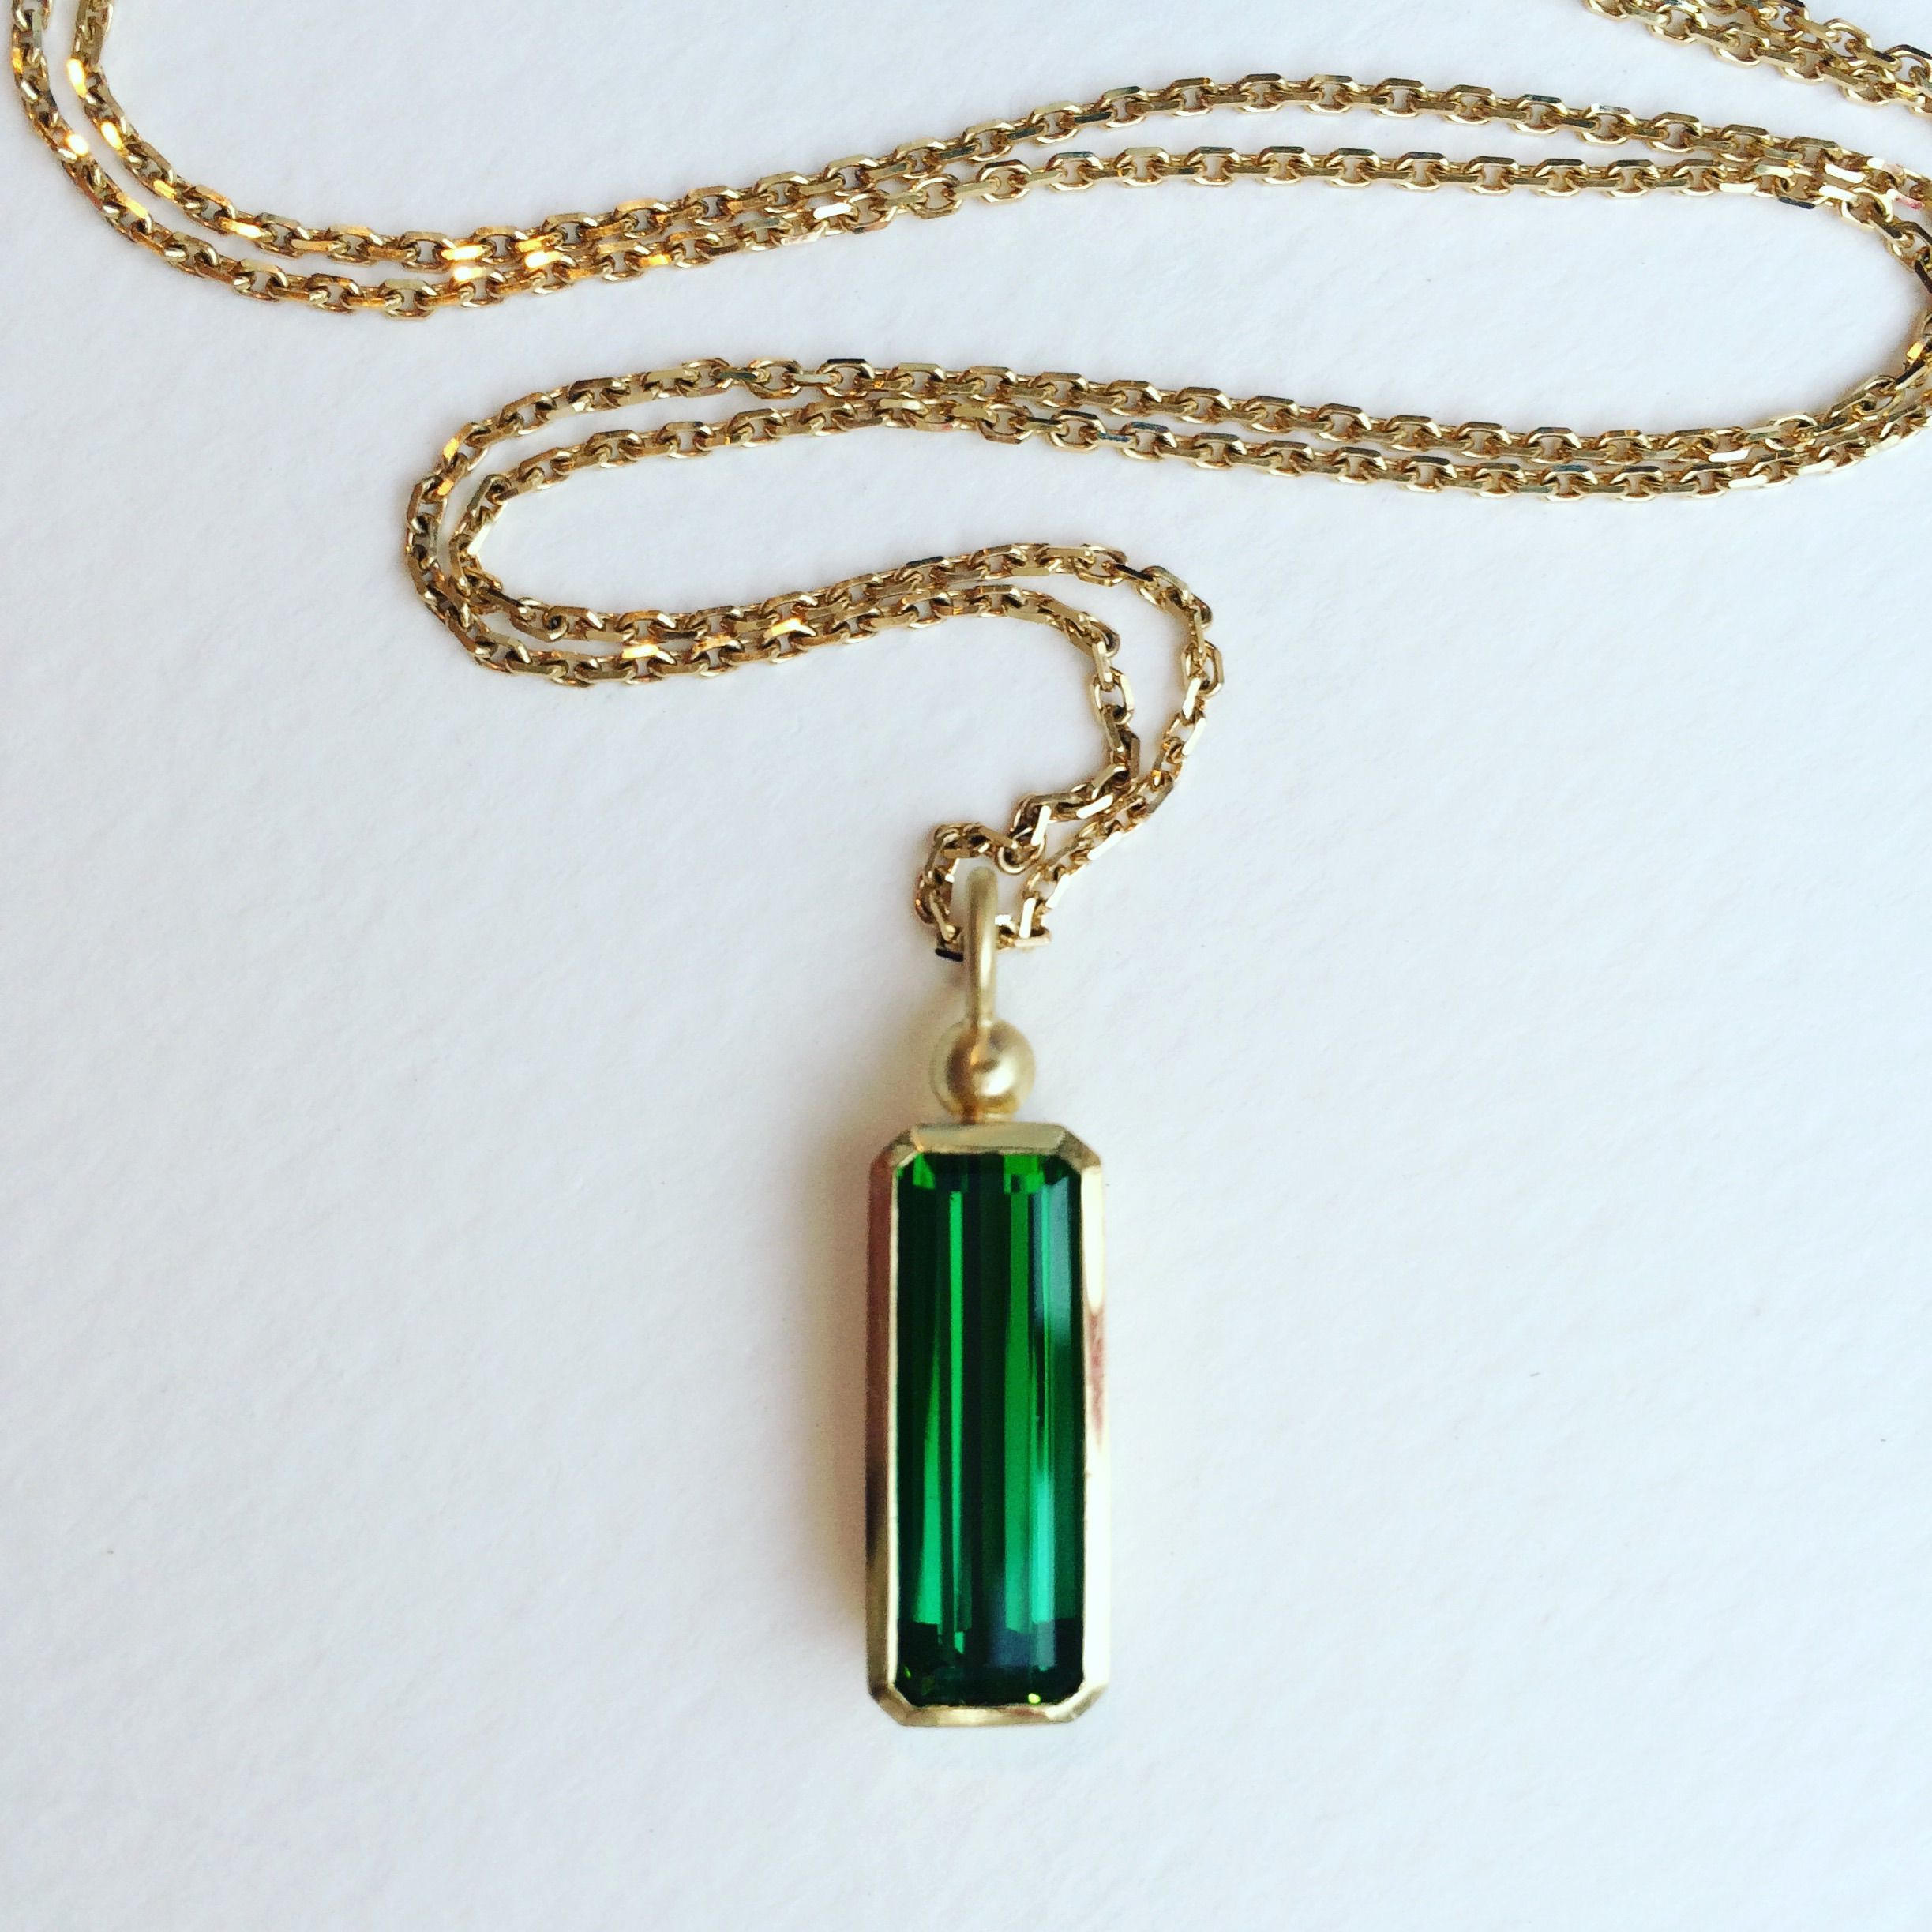 Deep green tourmaline pendant set in ct gold made by julia cook